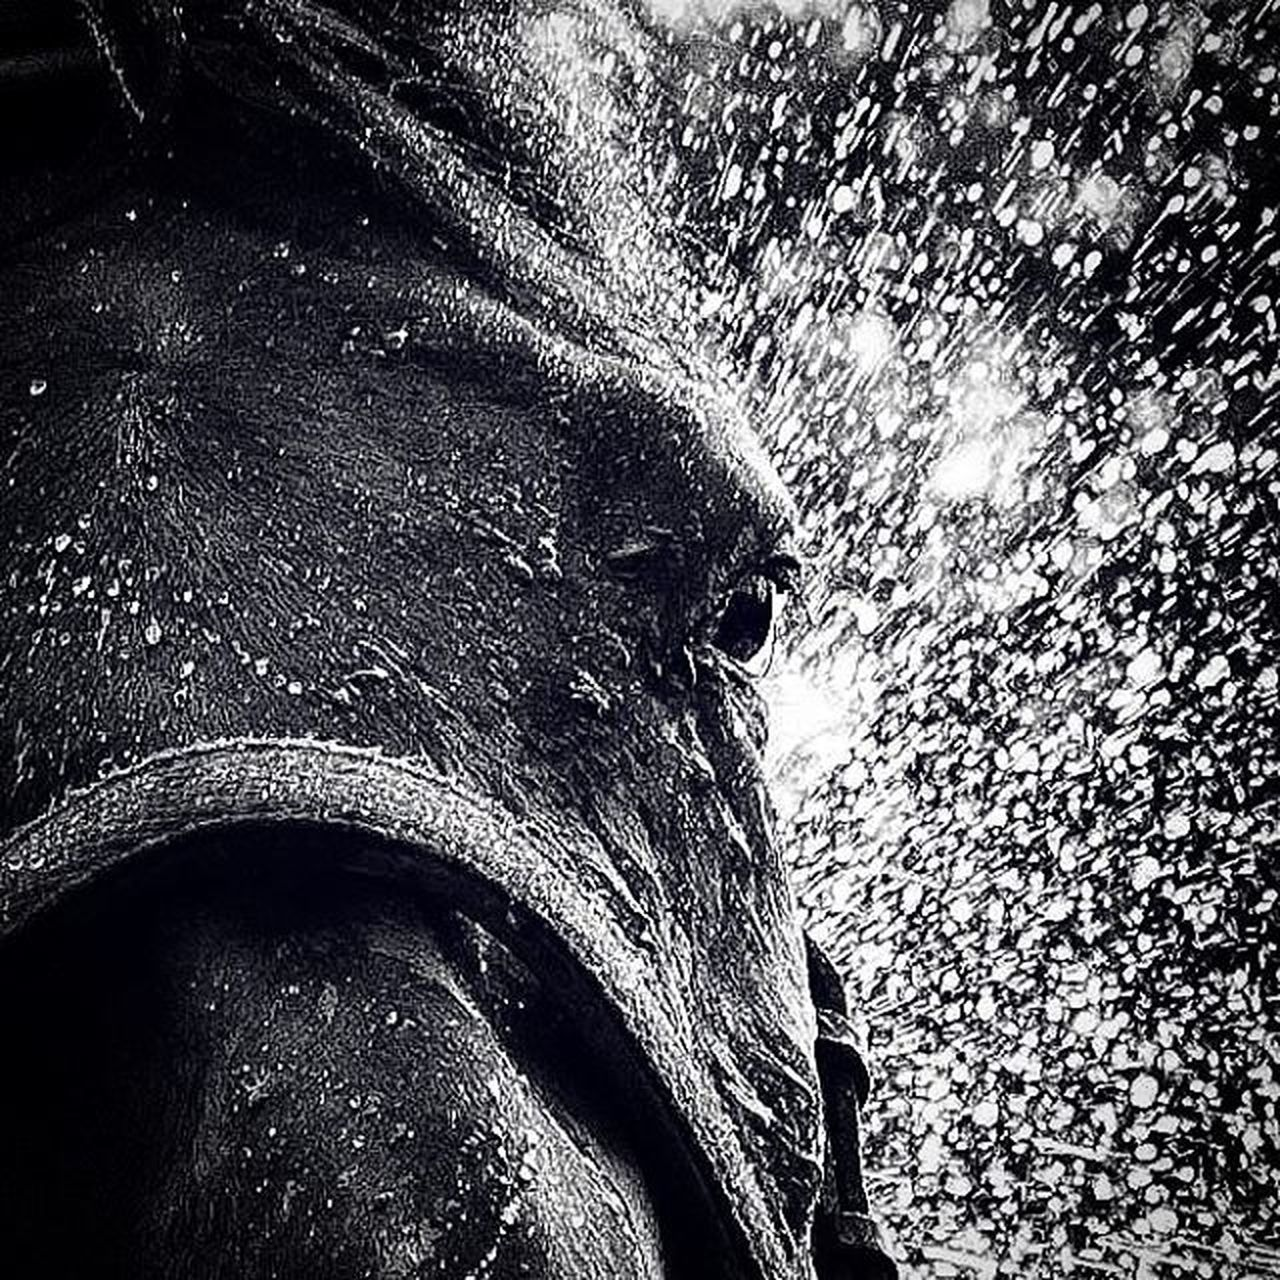 🚿🚿🚿 Bath Bathtime Horse Horses Water Blackandwhite Black Filly Stable Nature Equine Equinephotography Equestrian Landscape Instasyon Aniyakala Istanbuldayasam